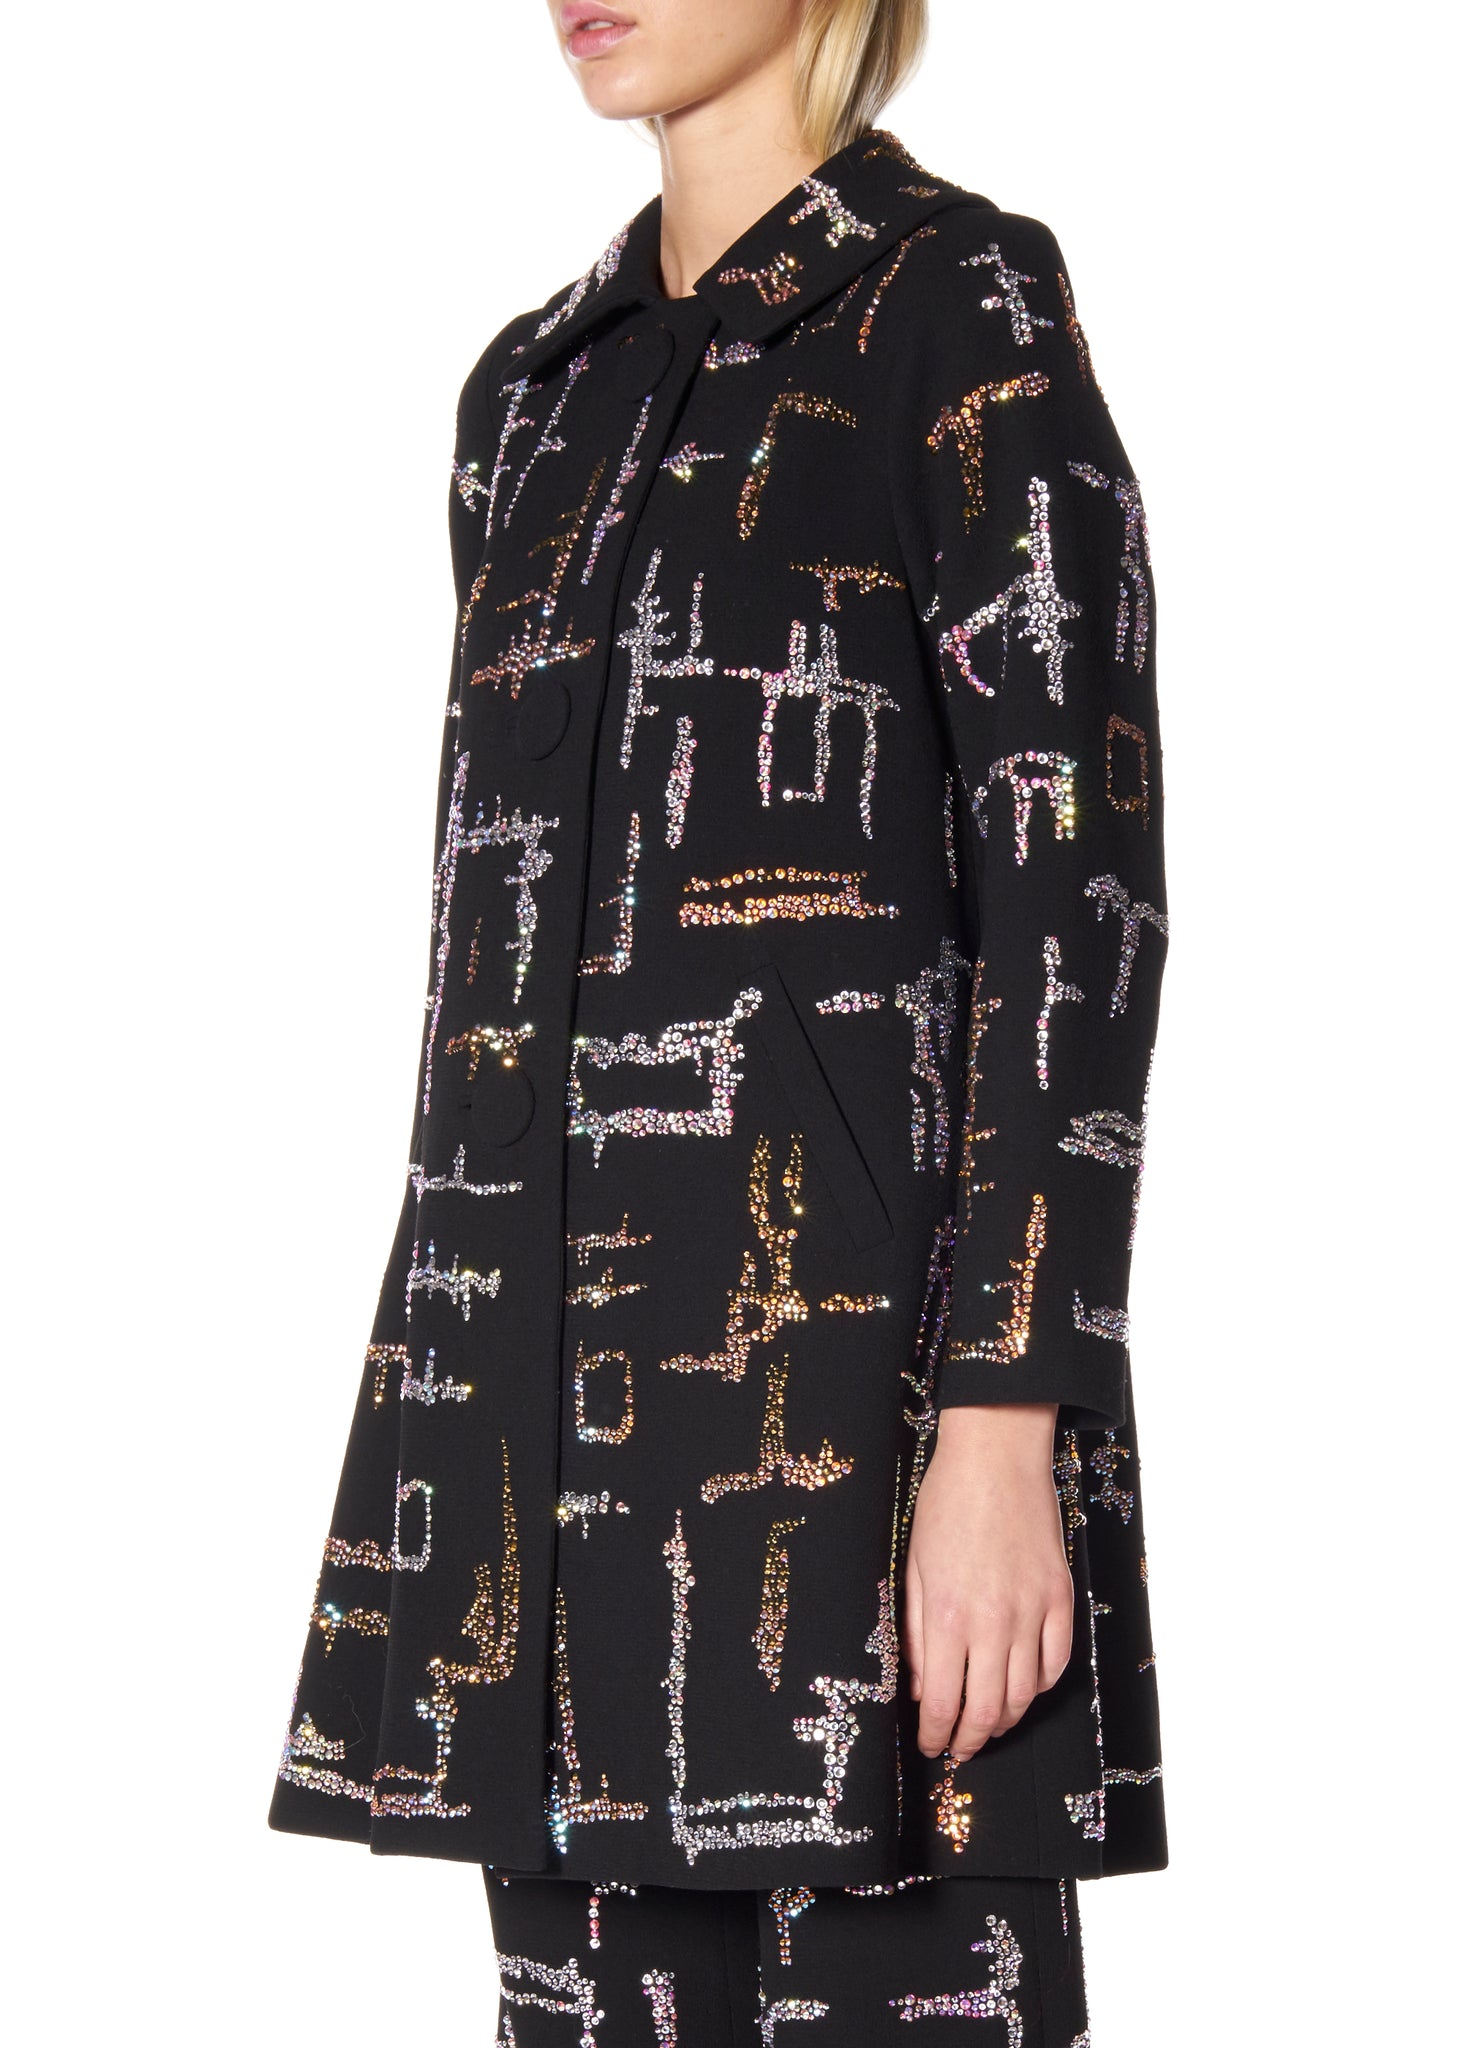 """SHANGHAI GEOMETRIC"" PETER PAN COLLAR COAT - Women's Jackets & Coats - Libertine"